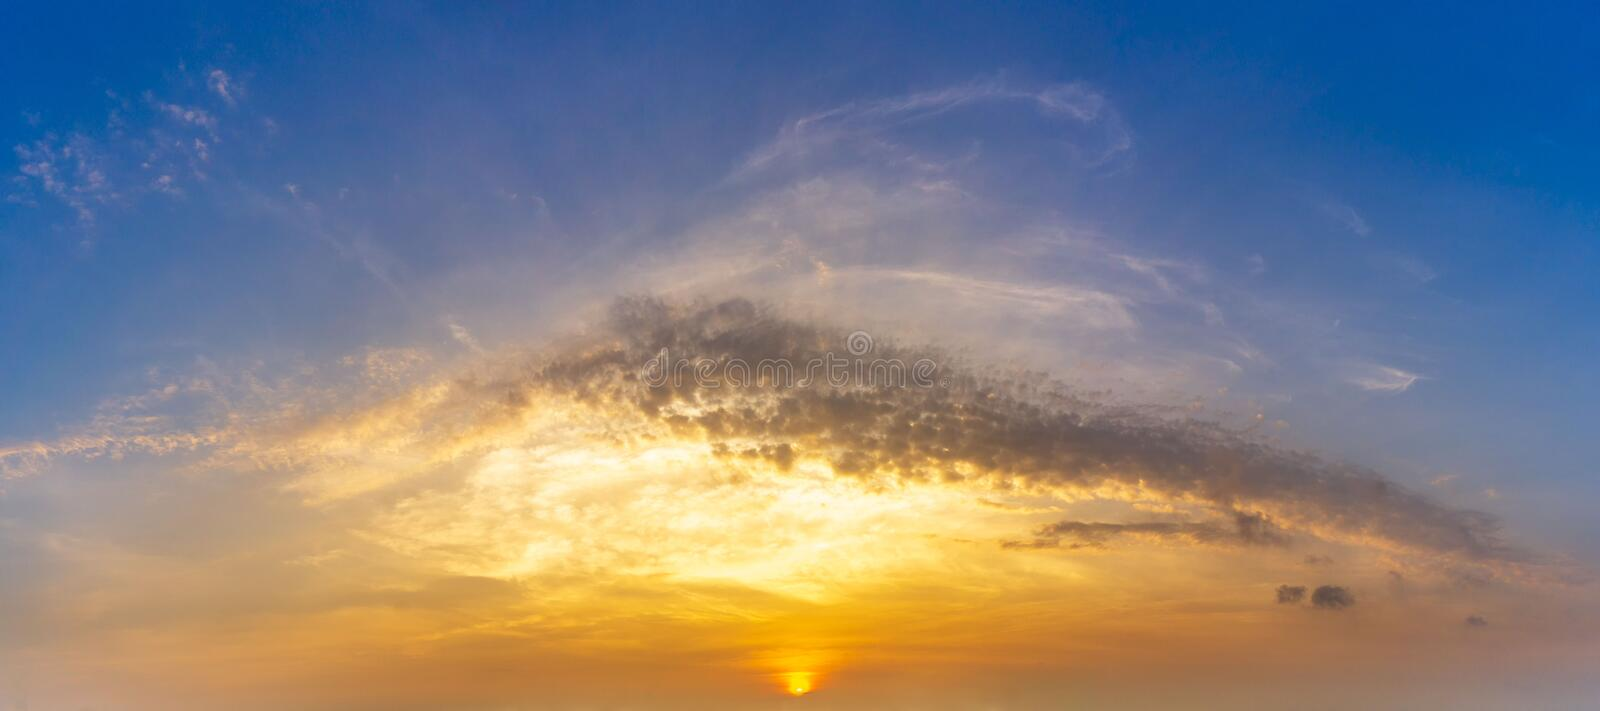 Pnorama morning golden hour sky and cloud with sunrise nature background. Pnorama picture of morning golden hour sky and cloud with sunrise nature background stock images